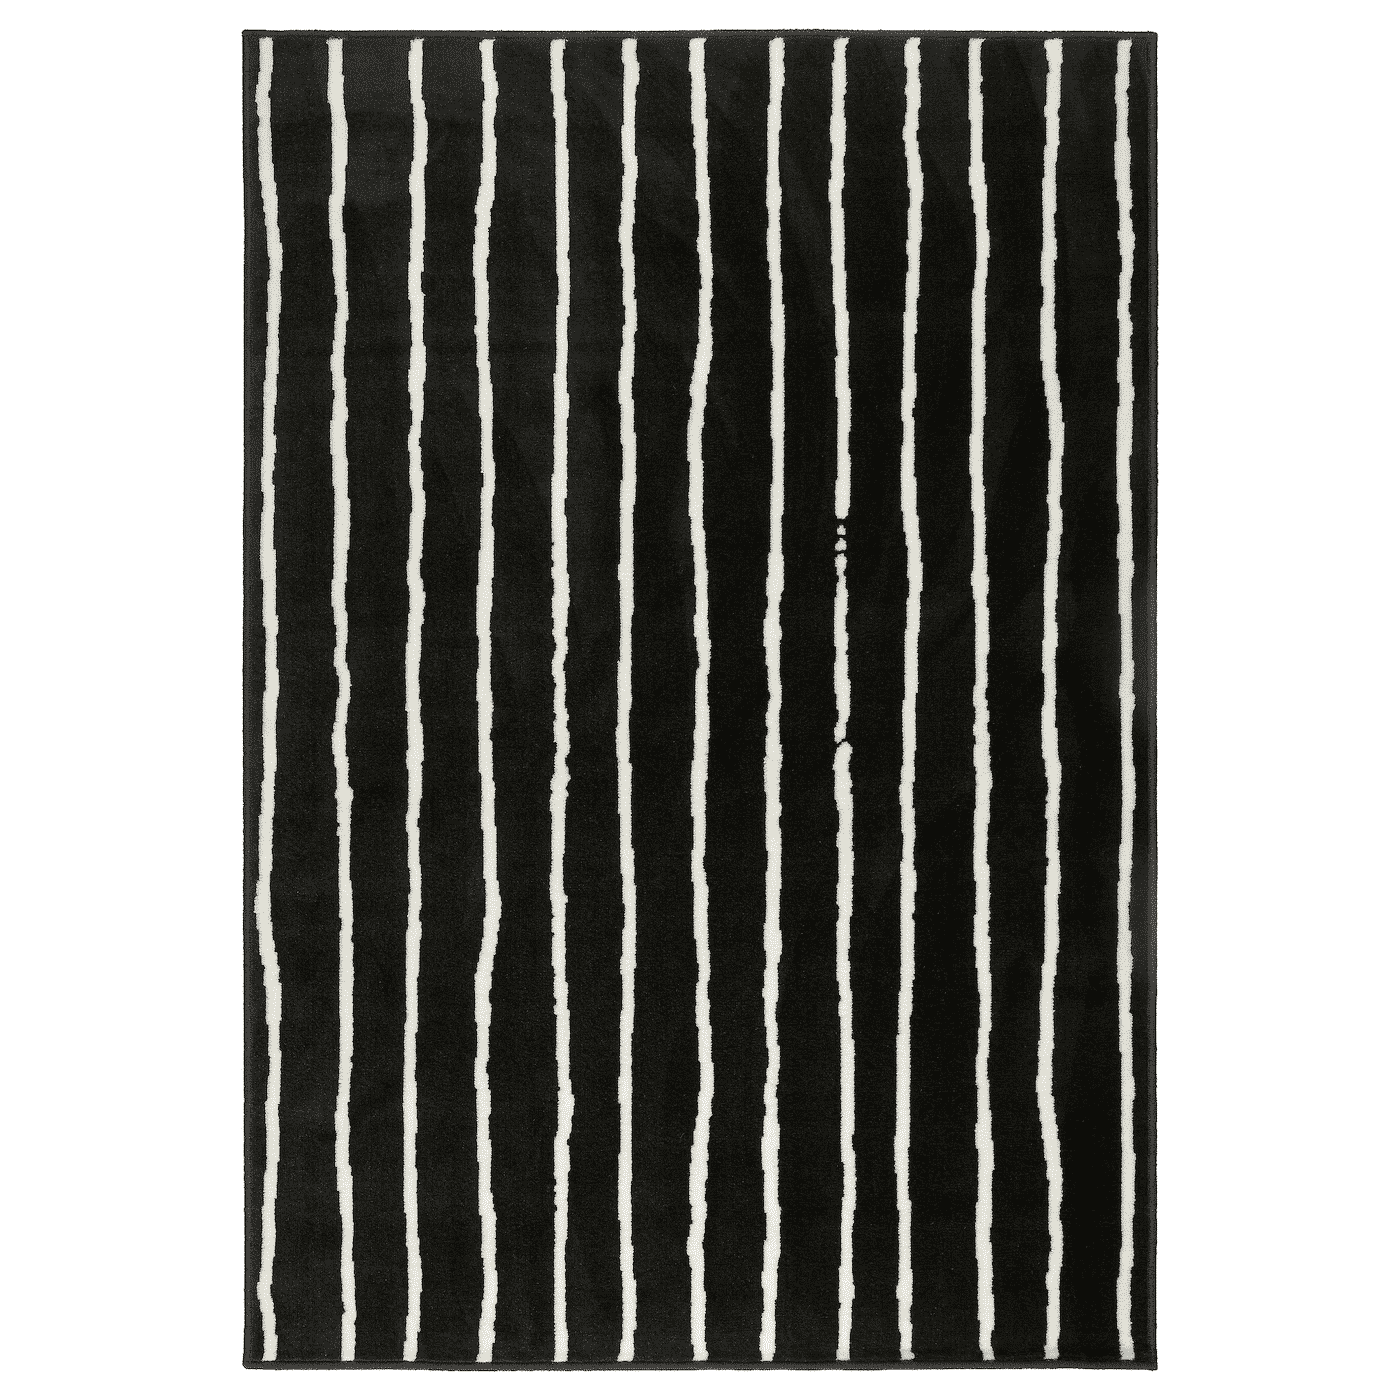 GÖRLÖSE Rug, low pile, black-white